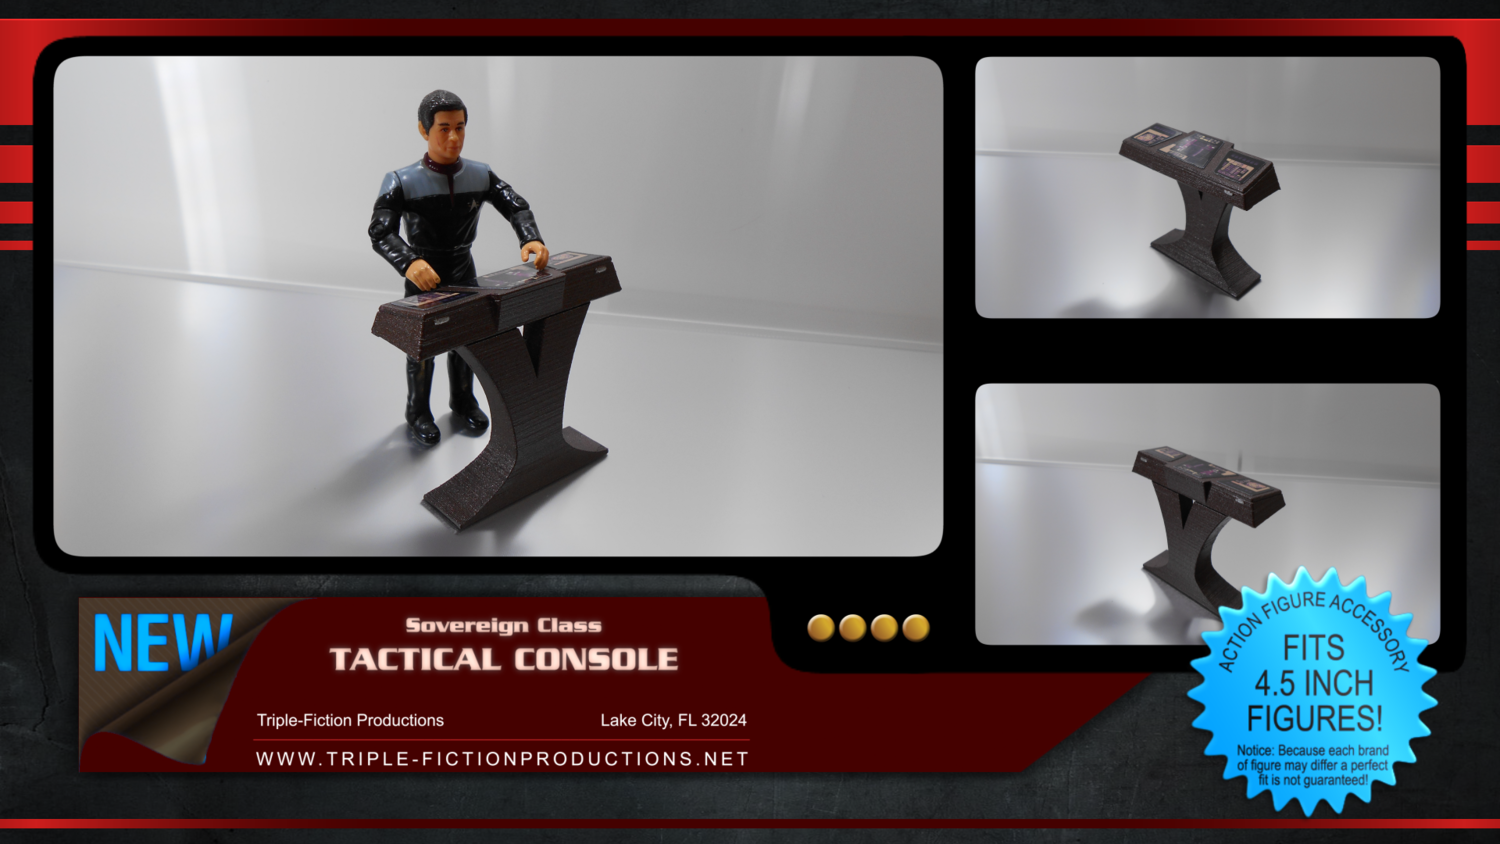 Sovereign Class Tactical Console